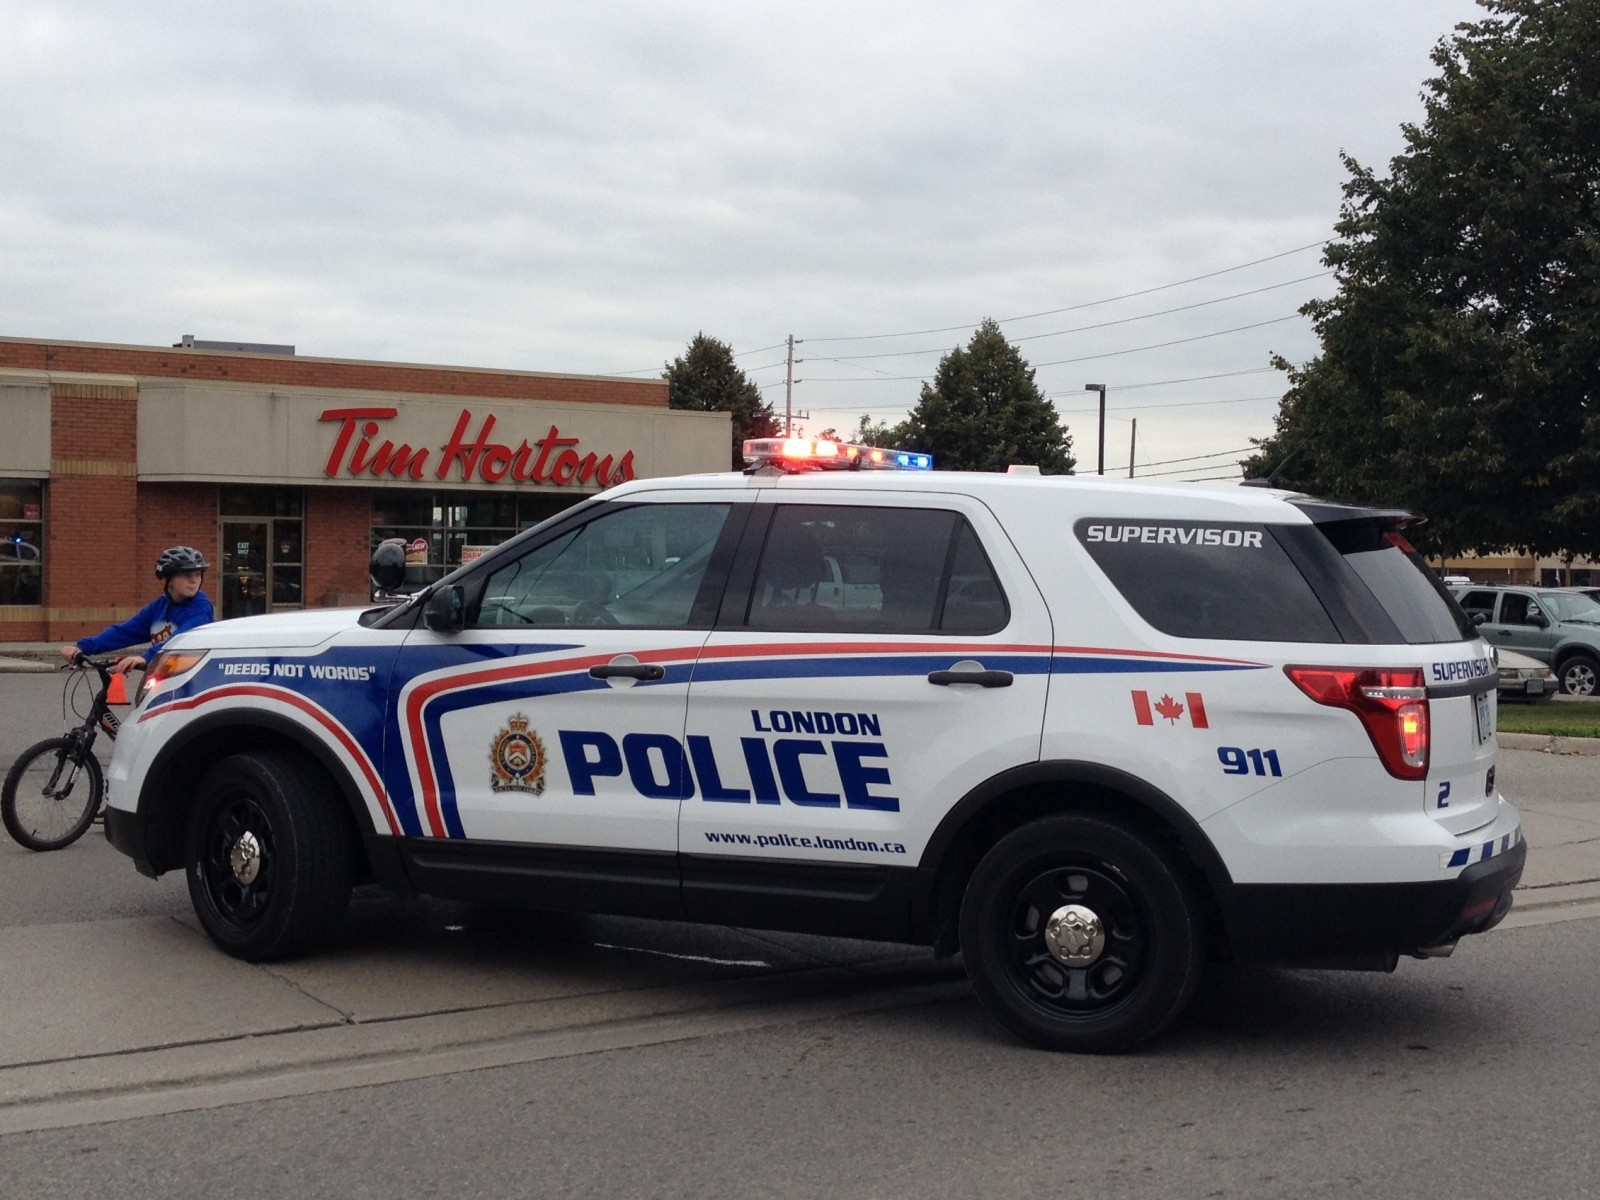 Collision sends cyclist to hospital with serious injuries